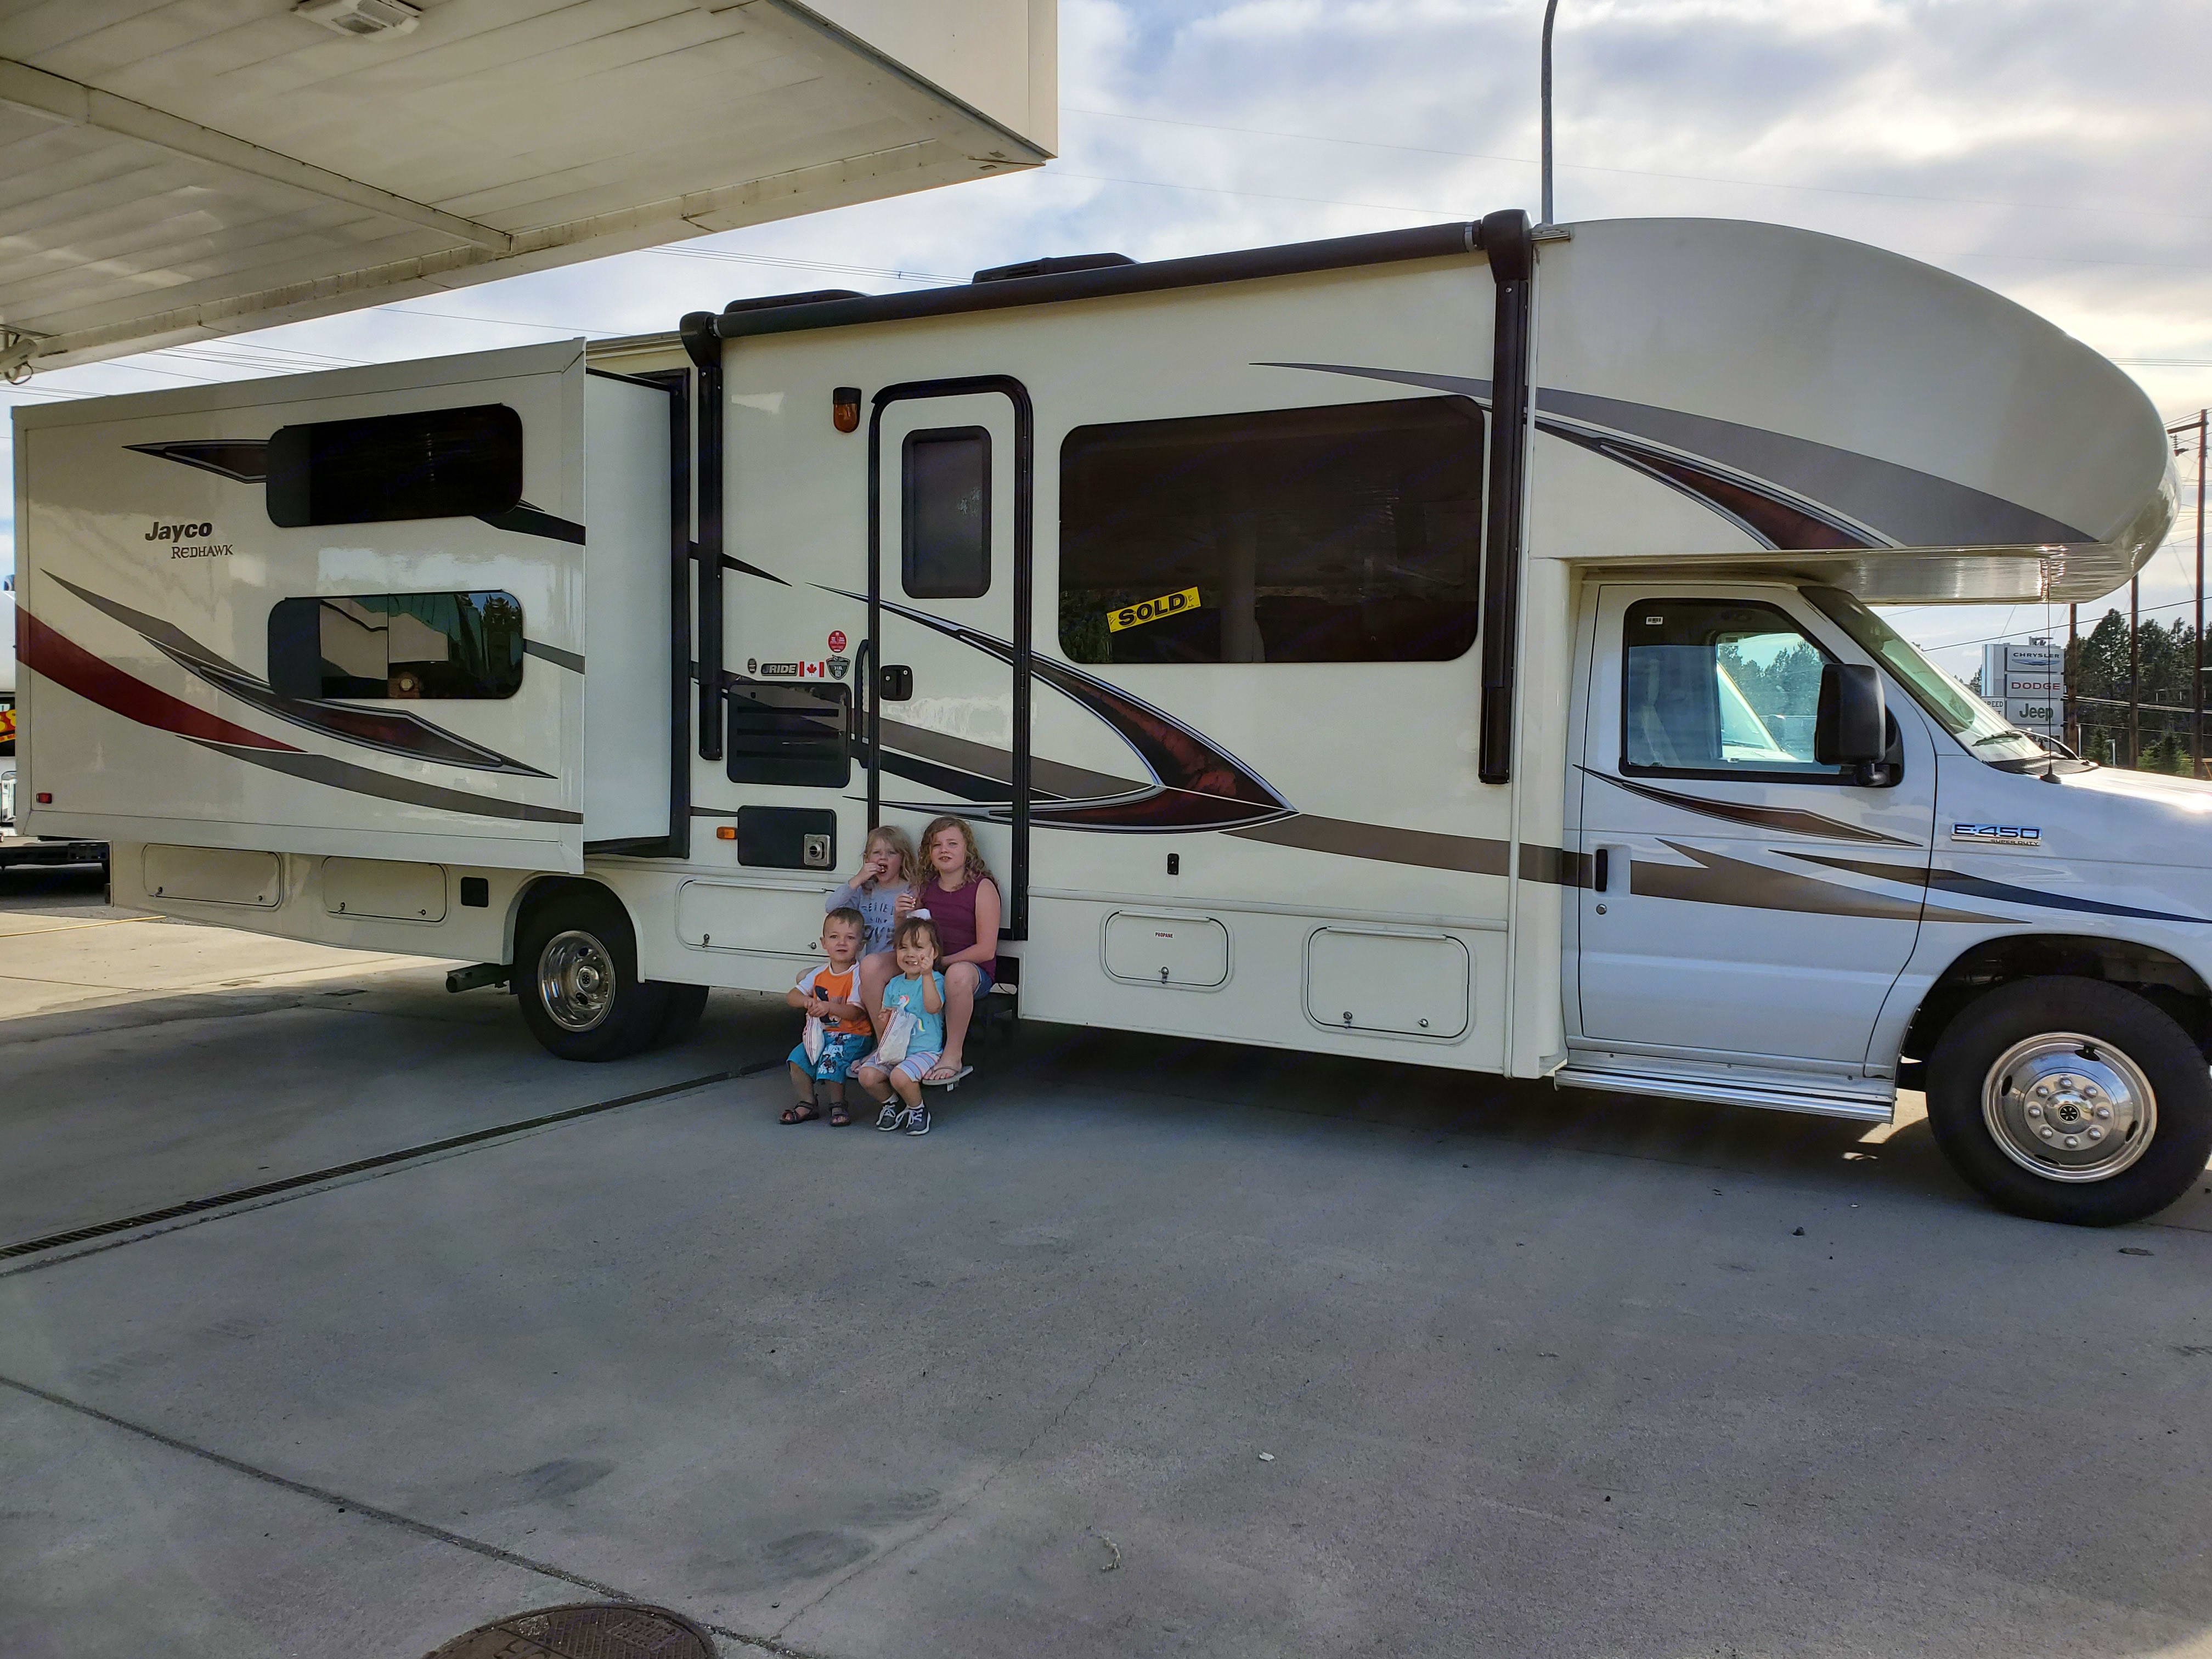 A picture of the day we made a family dream come true. We have four young kids and the RV life makes traveling enjoyable. We are excited to share our home on wheels with you on your next family adventure!. Jayco Redhawk 2017